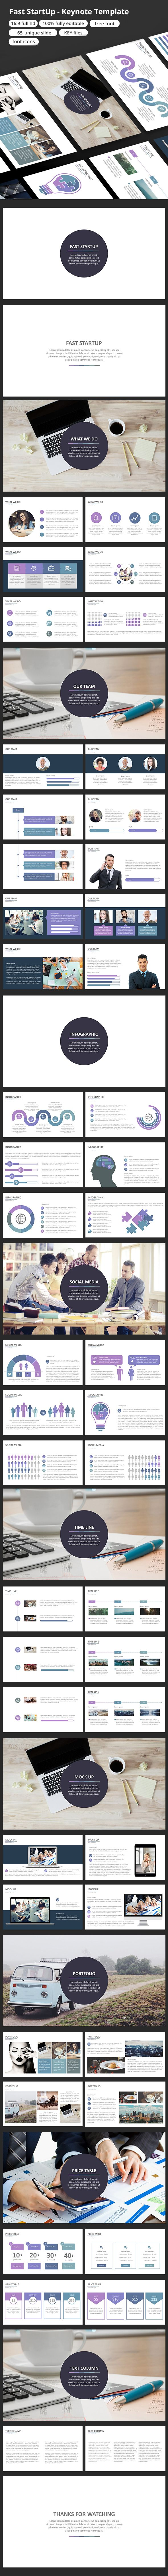 Fast StartUp Keynote Template #keynote #key #infographic #project • Download ➝ https://graphicriver.net/item/fast-startup-keynote-template/18738943?ref=pxcr